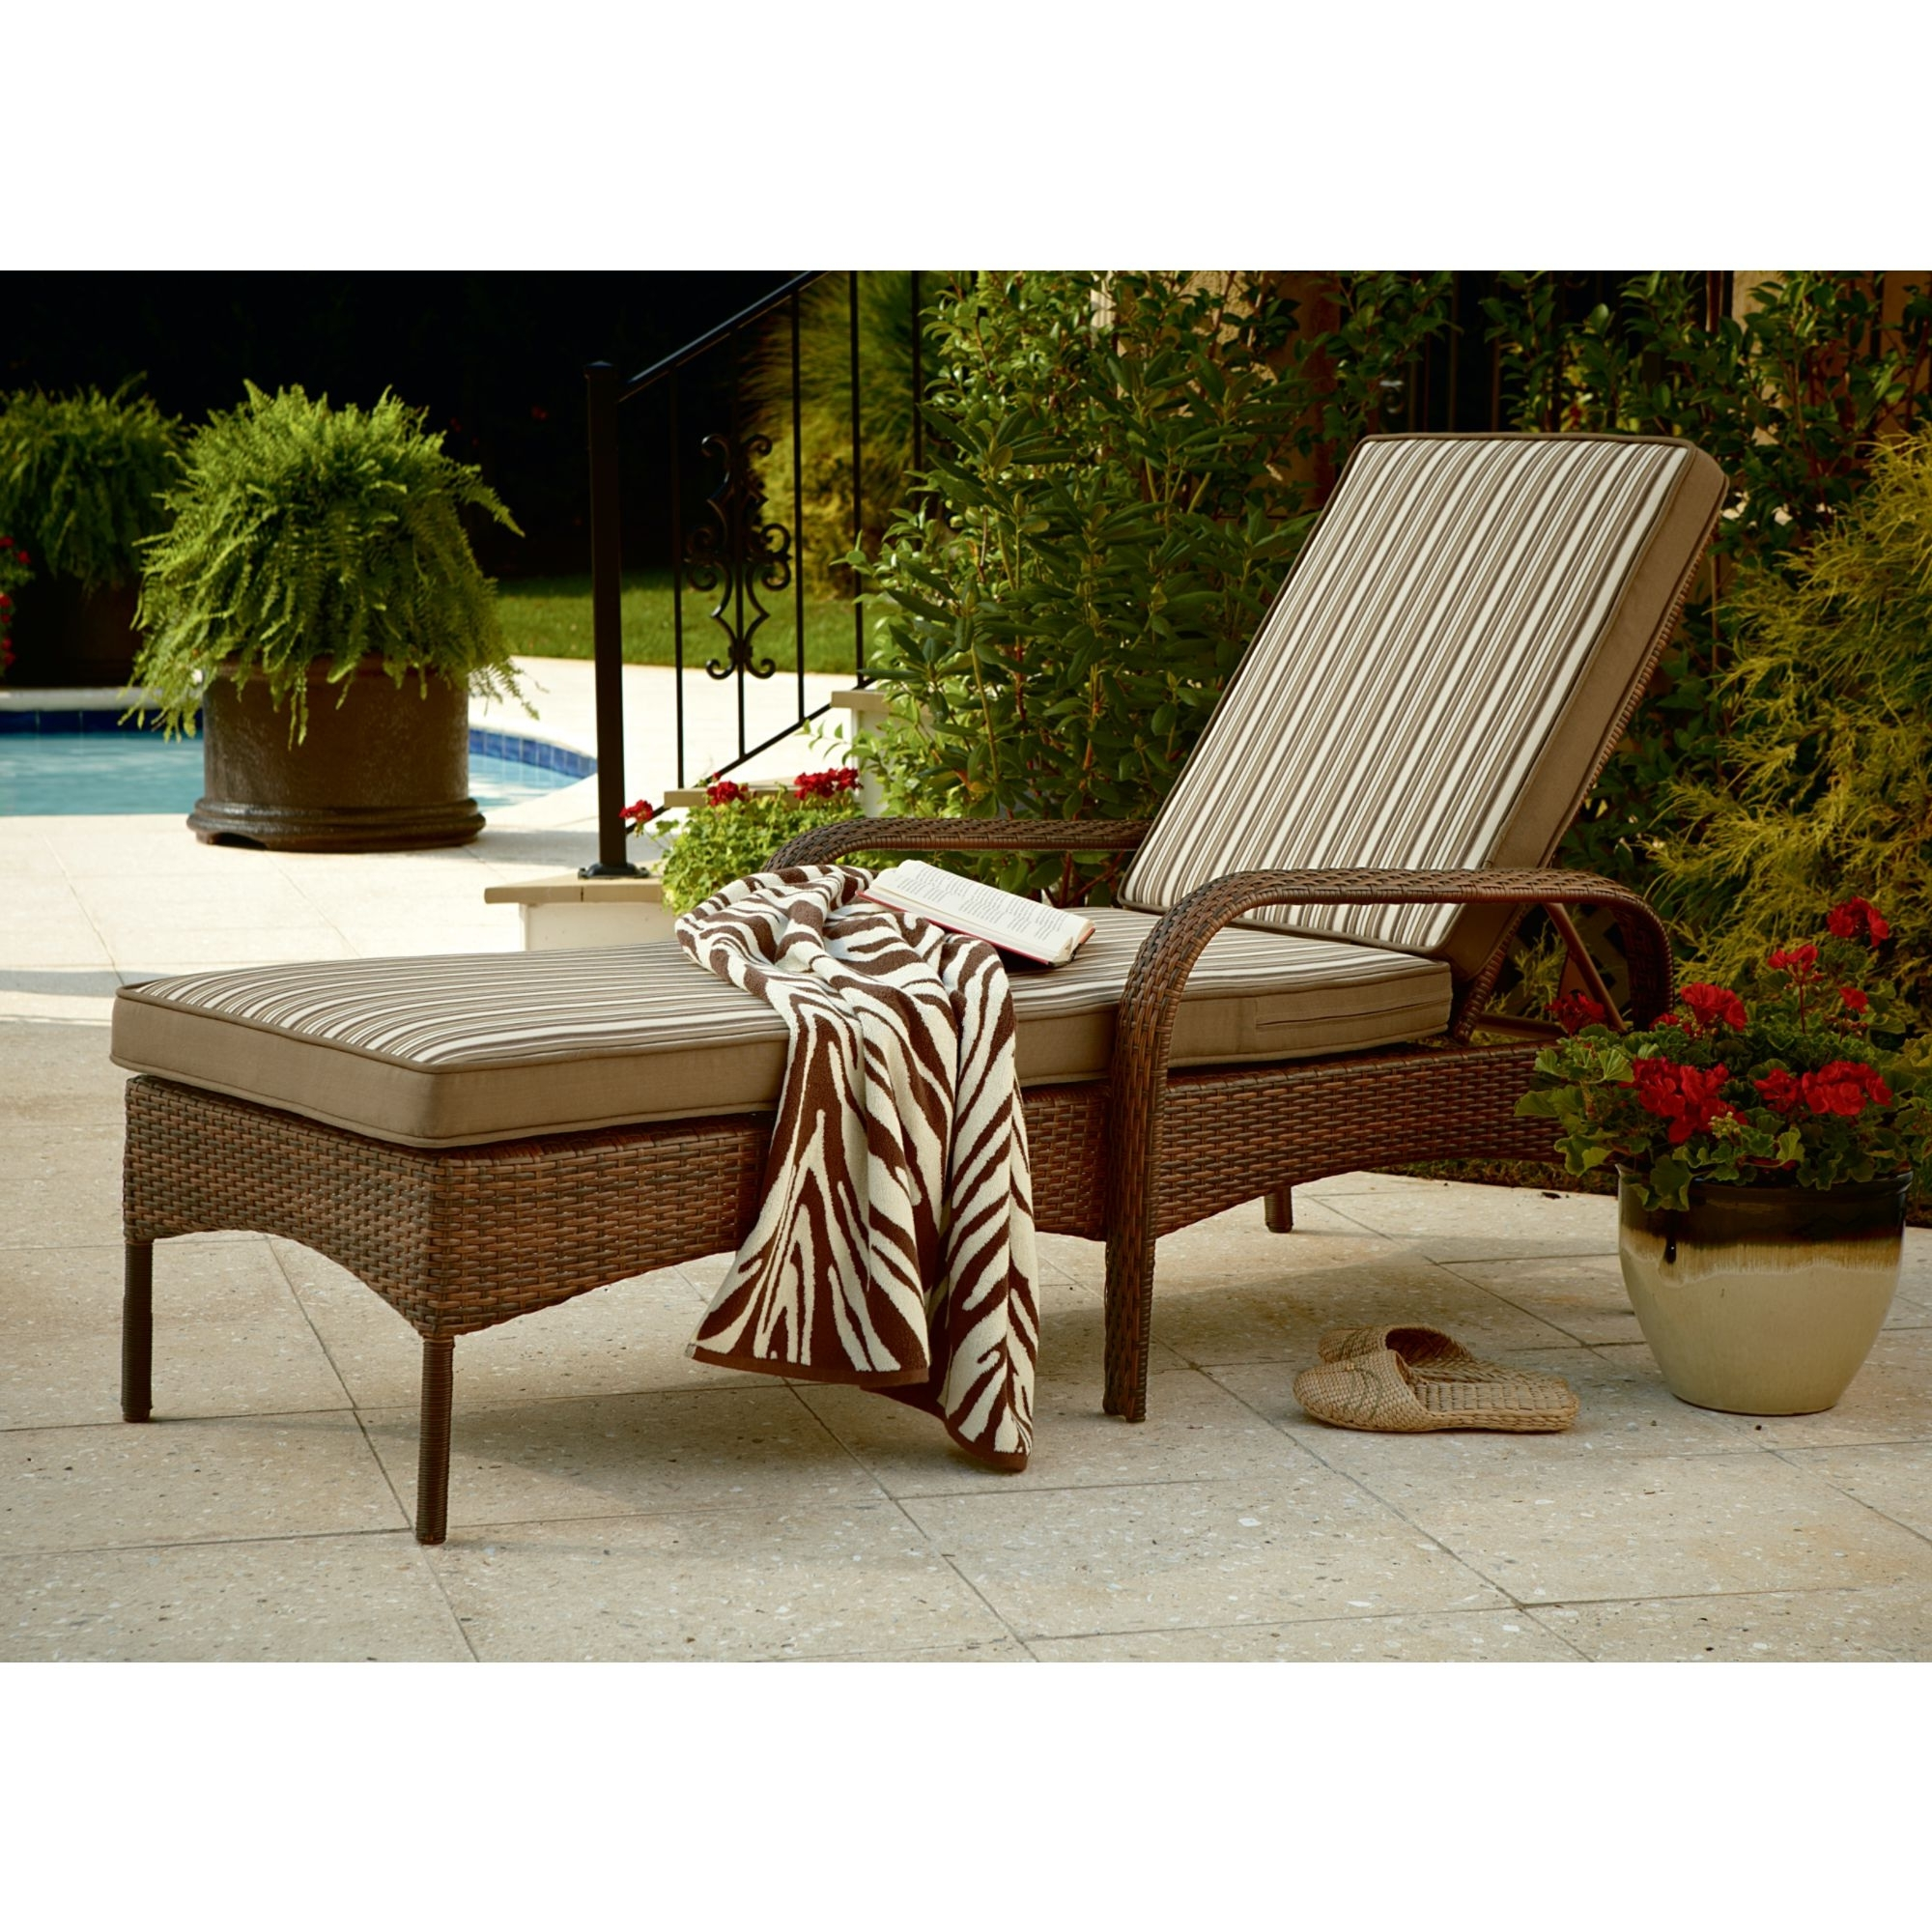 Outdoor Wicker Chaise Lounges Pertaining To Well Known Outdoor : White Chaise Lounge Sofa Outdoor Chaise Lounge Covers (View 4 of 15)